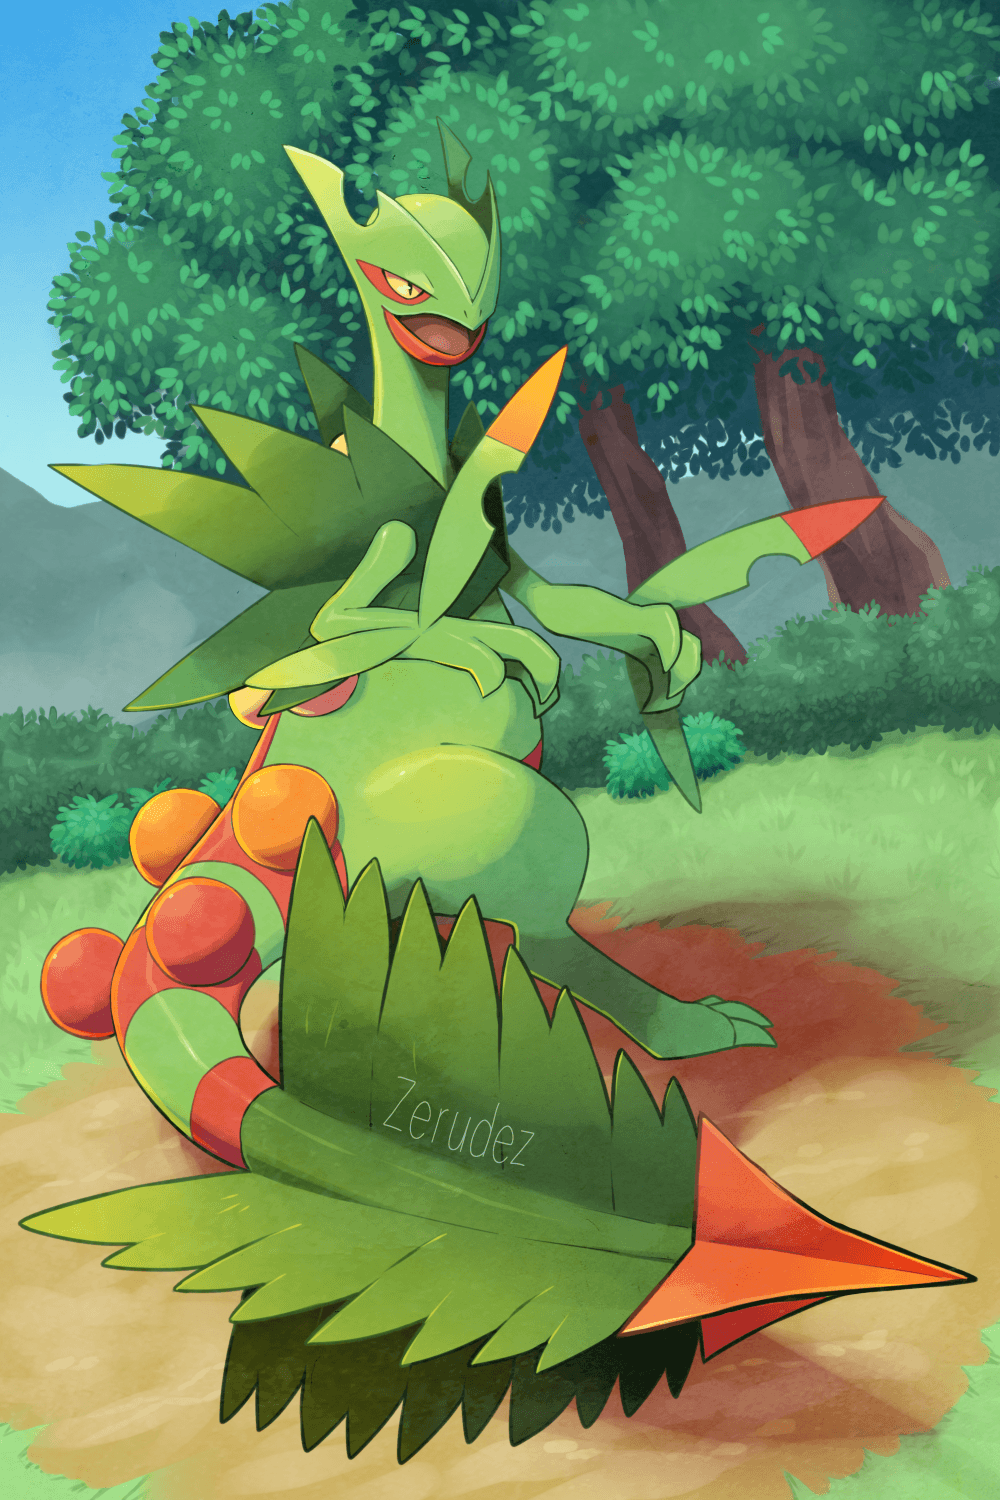 Mega Sceptile: My Sceptile, Grecki, was one of my first Pokemon to